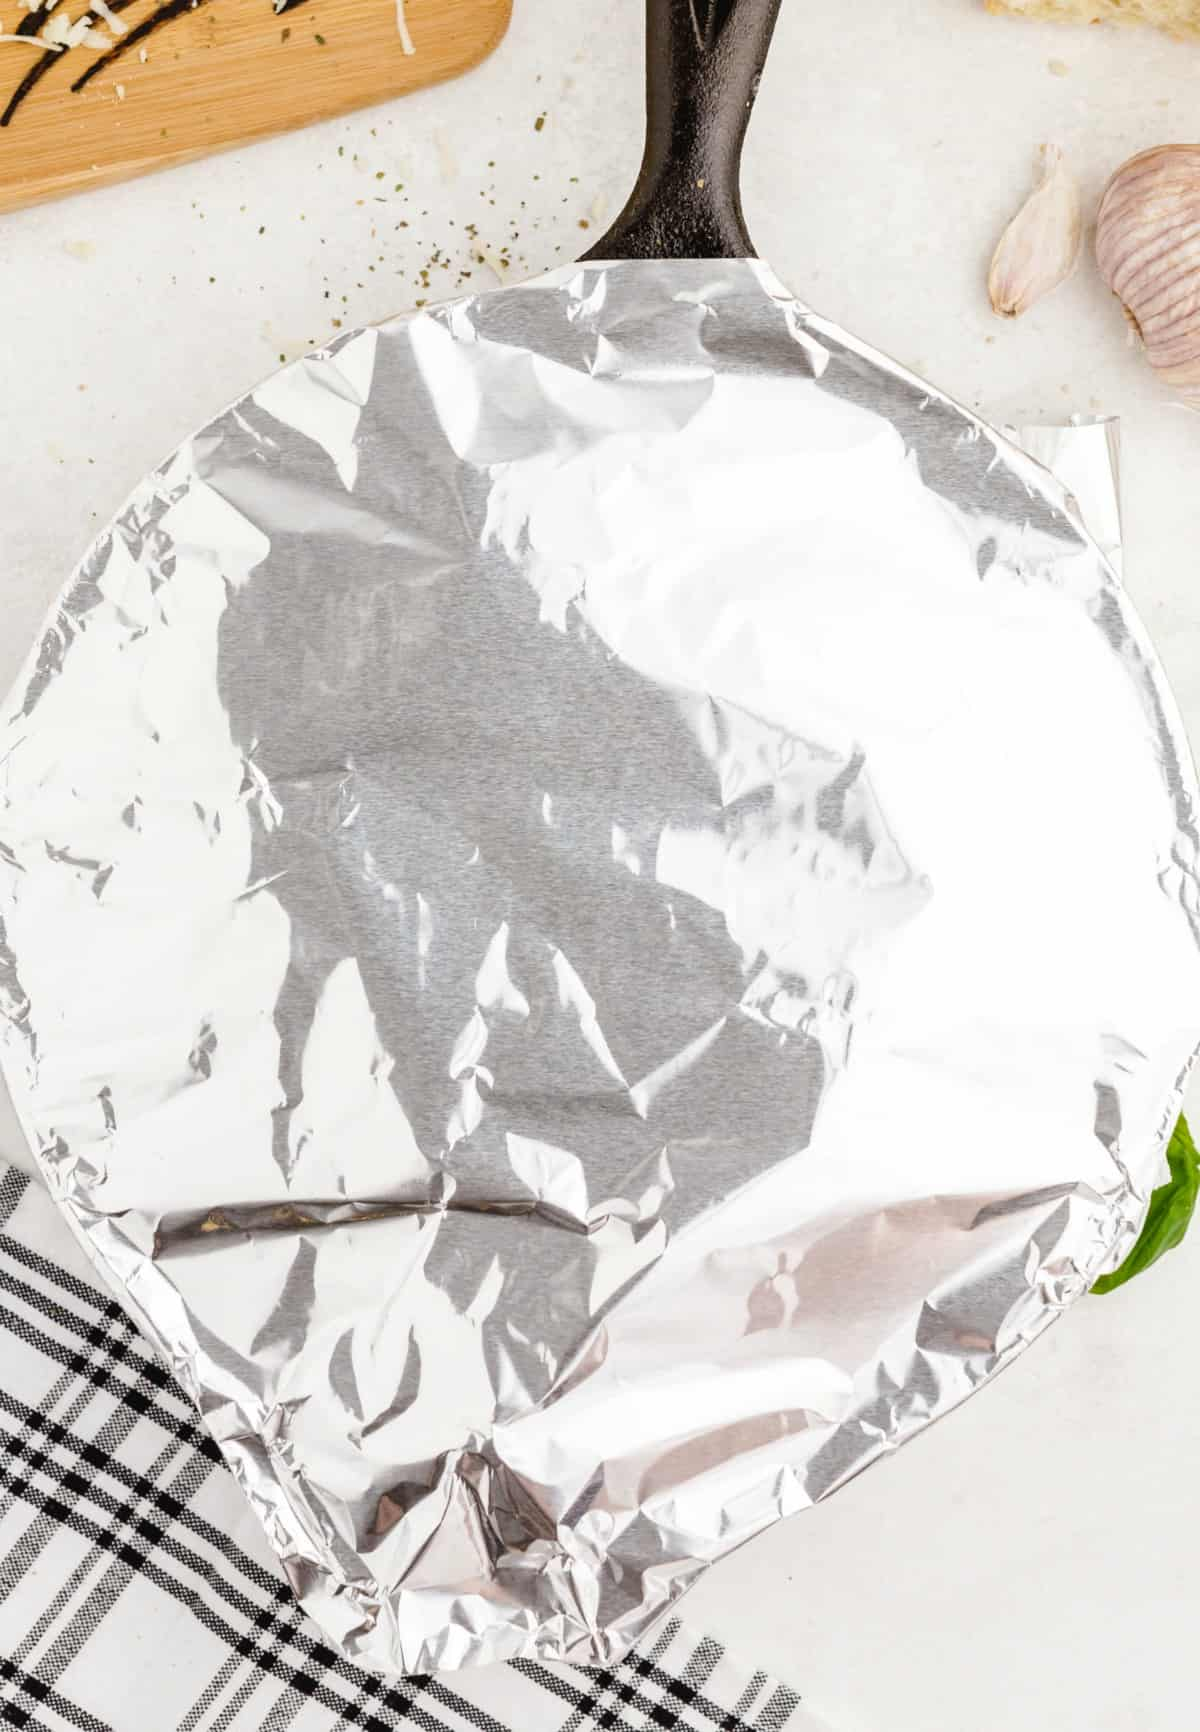 cover pan with foil